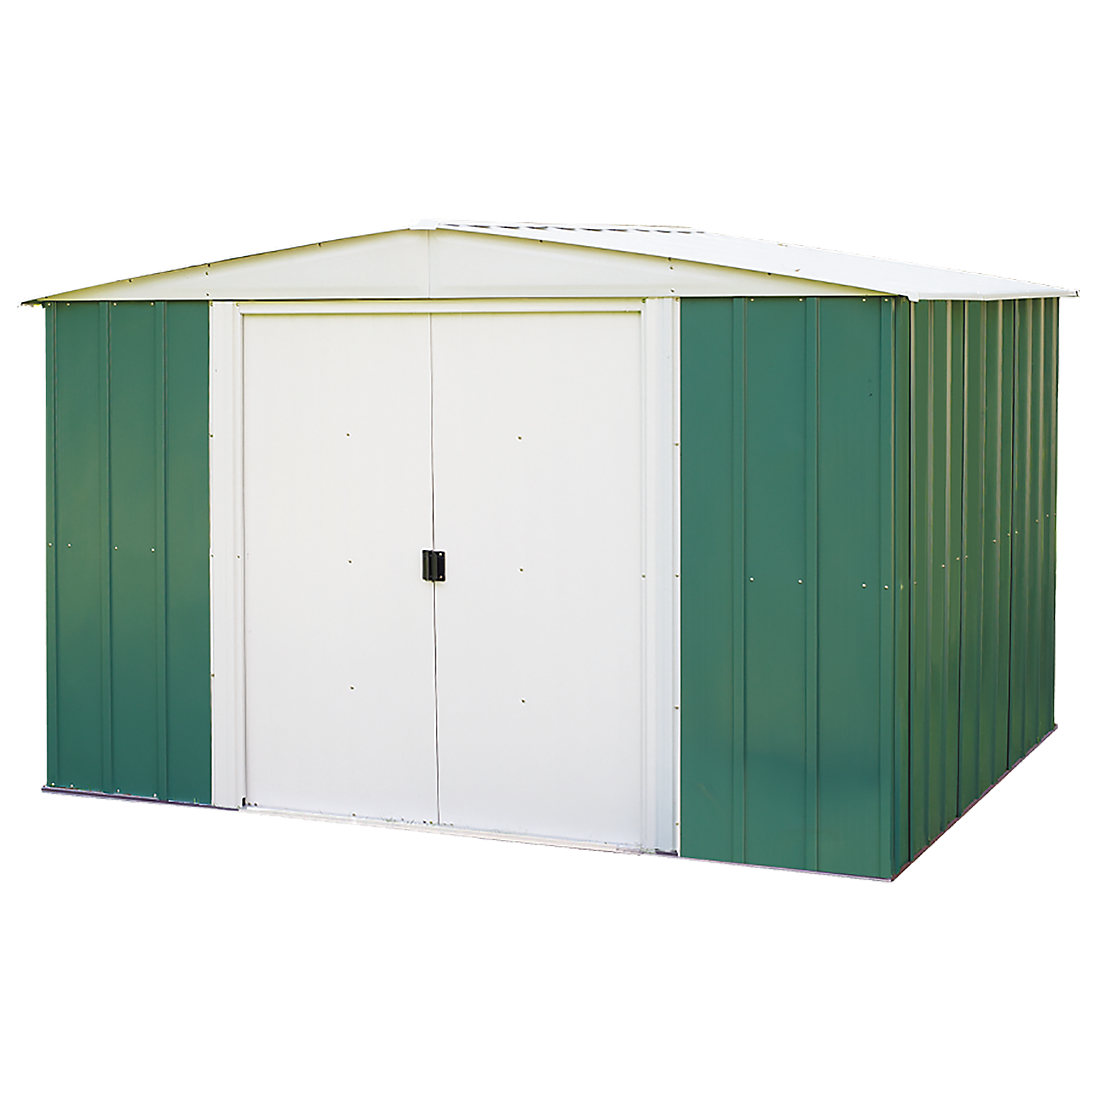 Dresden Series 10 x 8 ft. Steel Shed